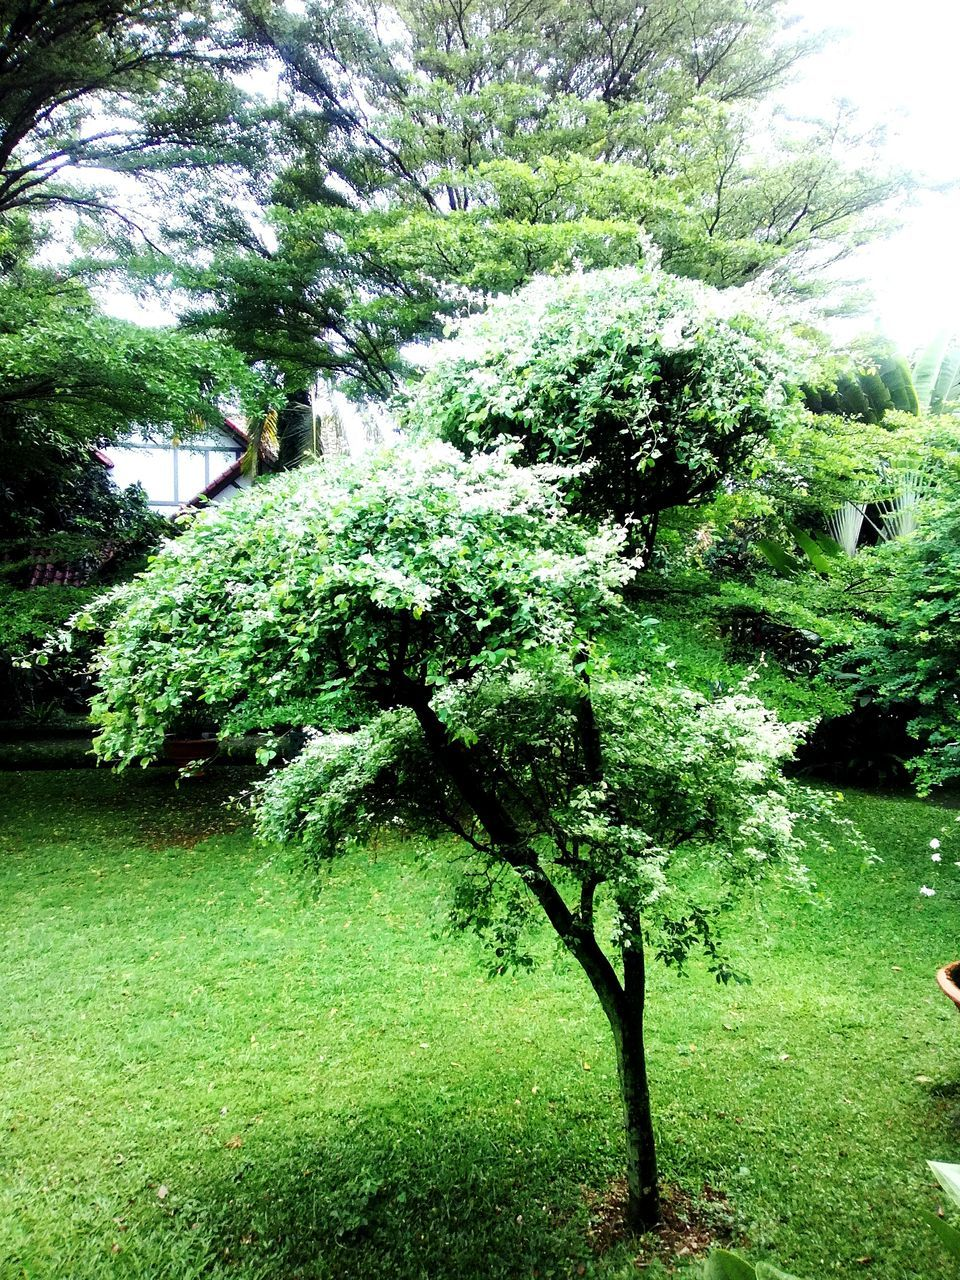 nature, growth, tree, tranquility, grass, beauty in nature, no people, plant, day, outdoors